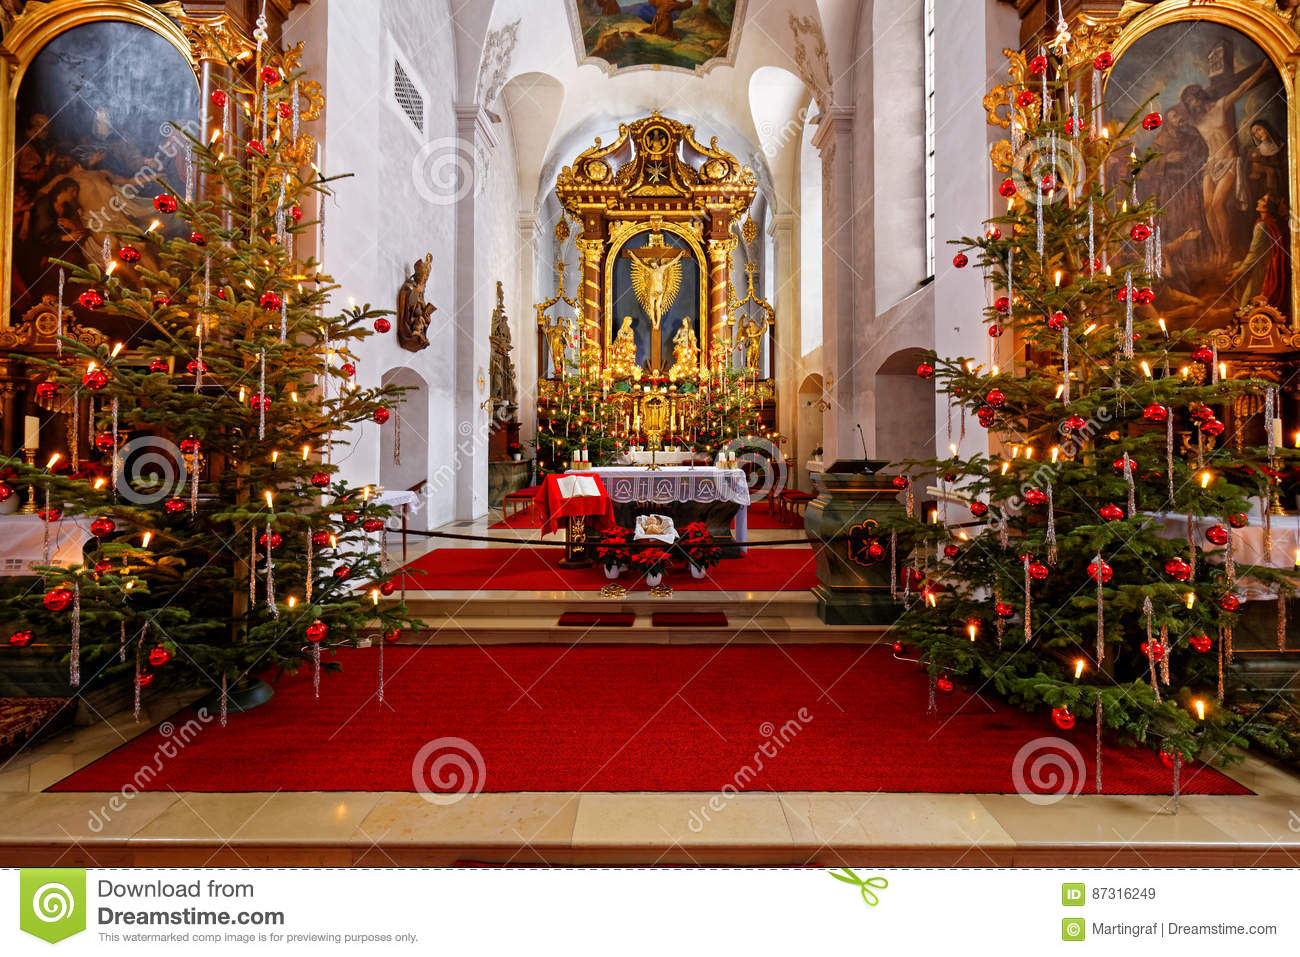 Christmas Decorations For Church Sanctuary  from thumbs.dreamstime.com